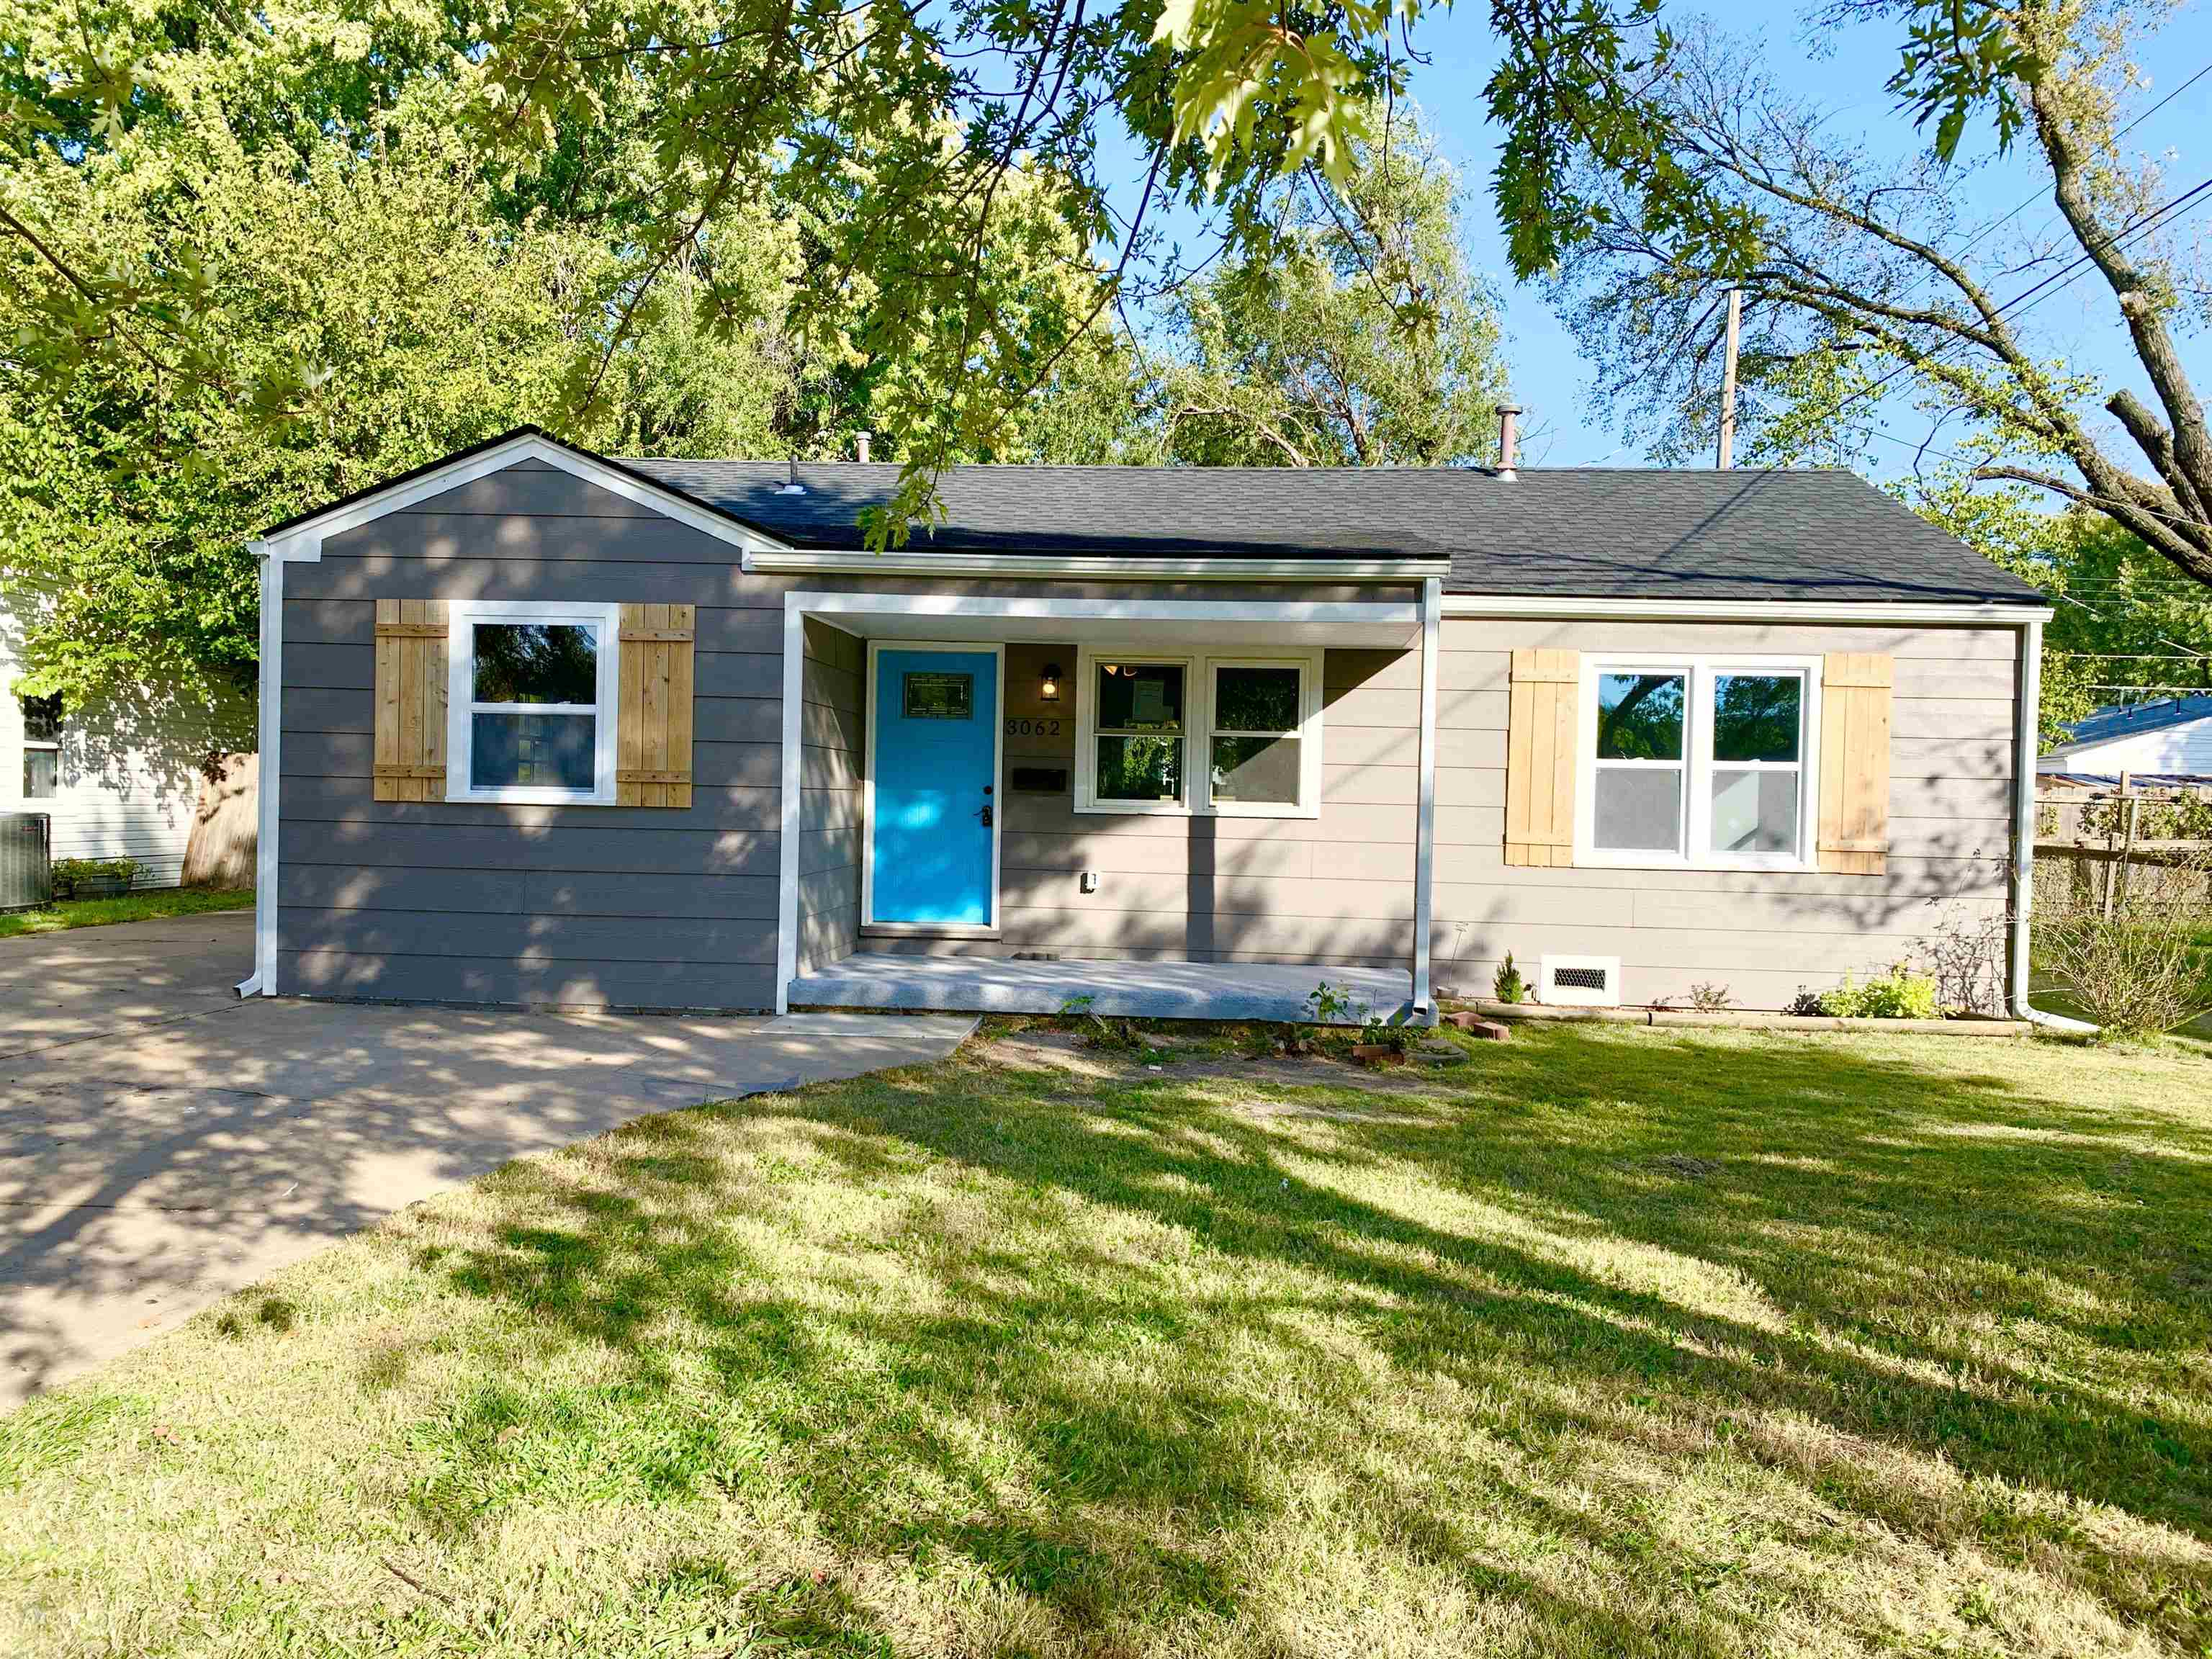 NEW! NEW! NEW EVERYTHING! You don't want to miss this adorable home in a great, well-kept neighborho